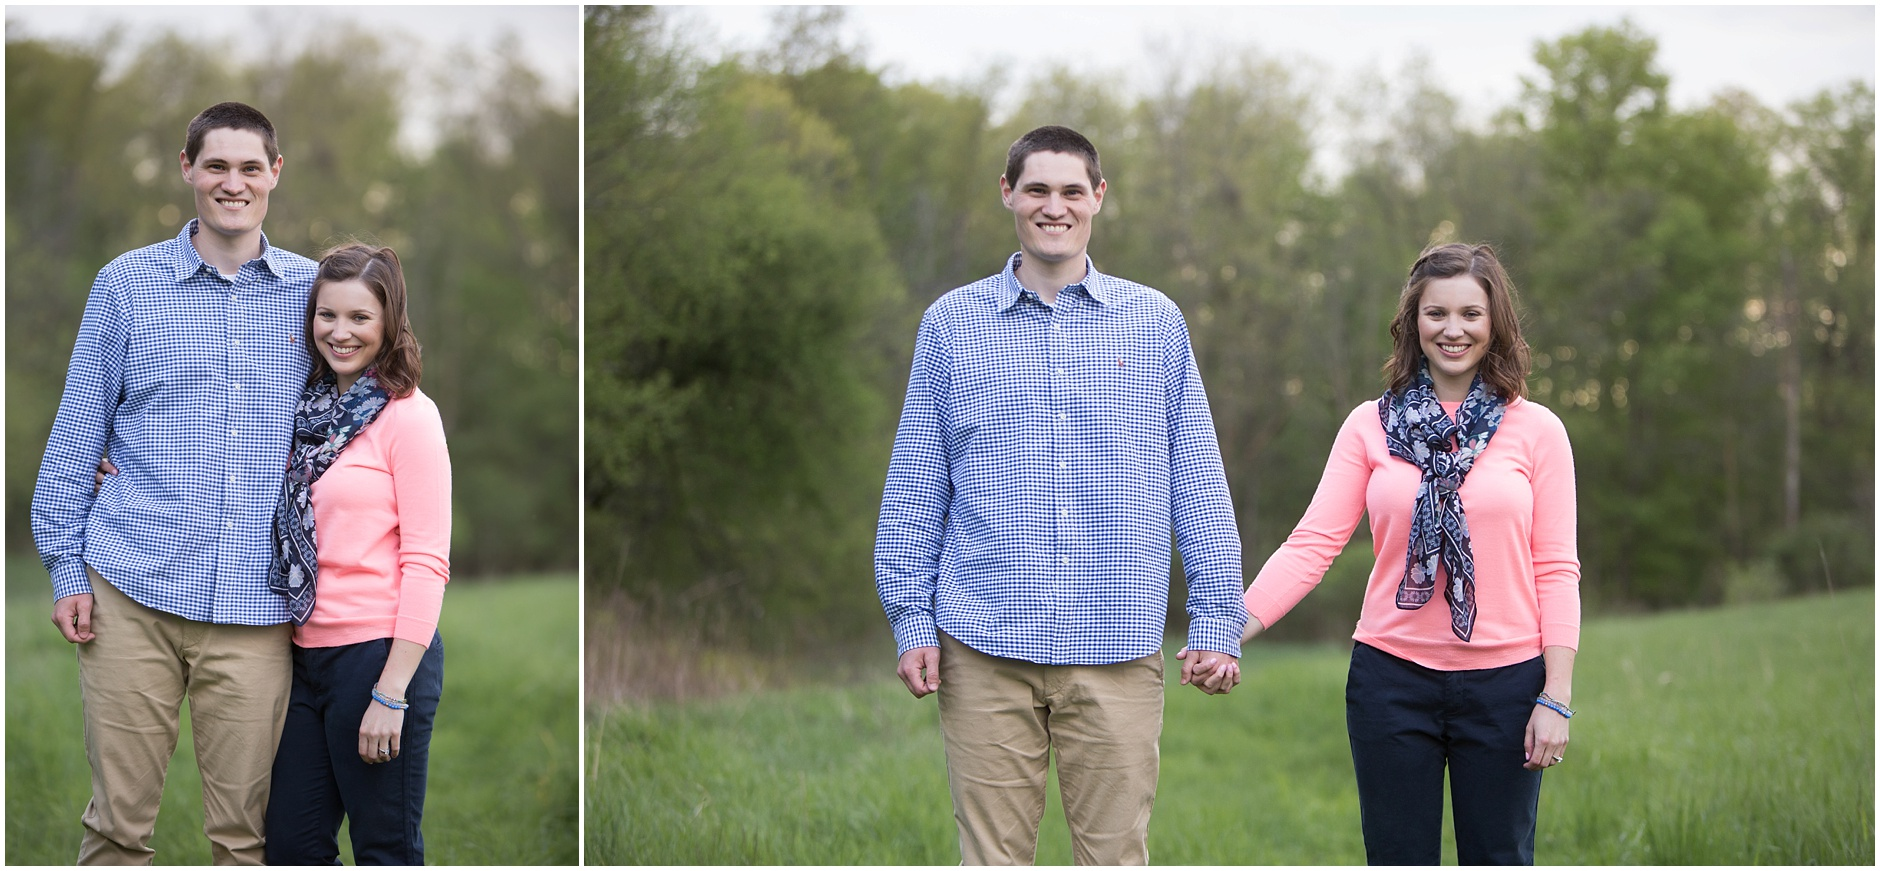 Portrait Photographer in Northville, MI